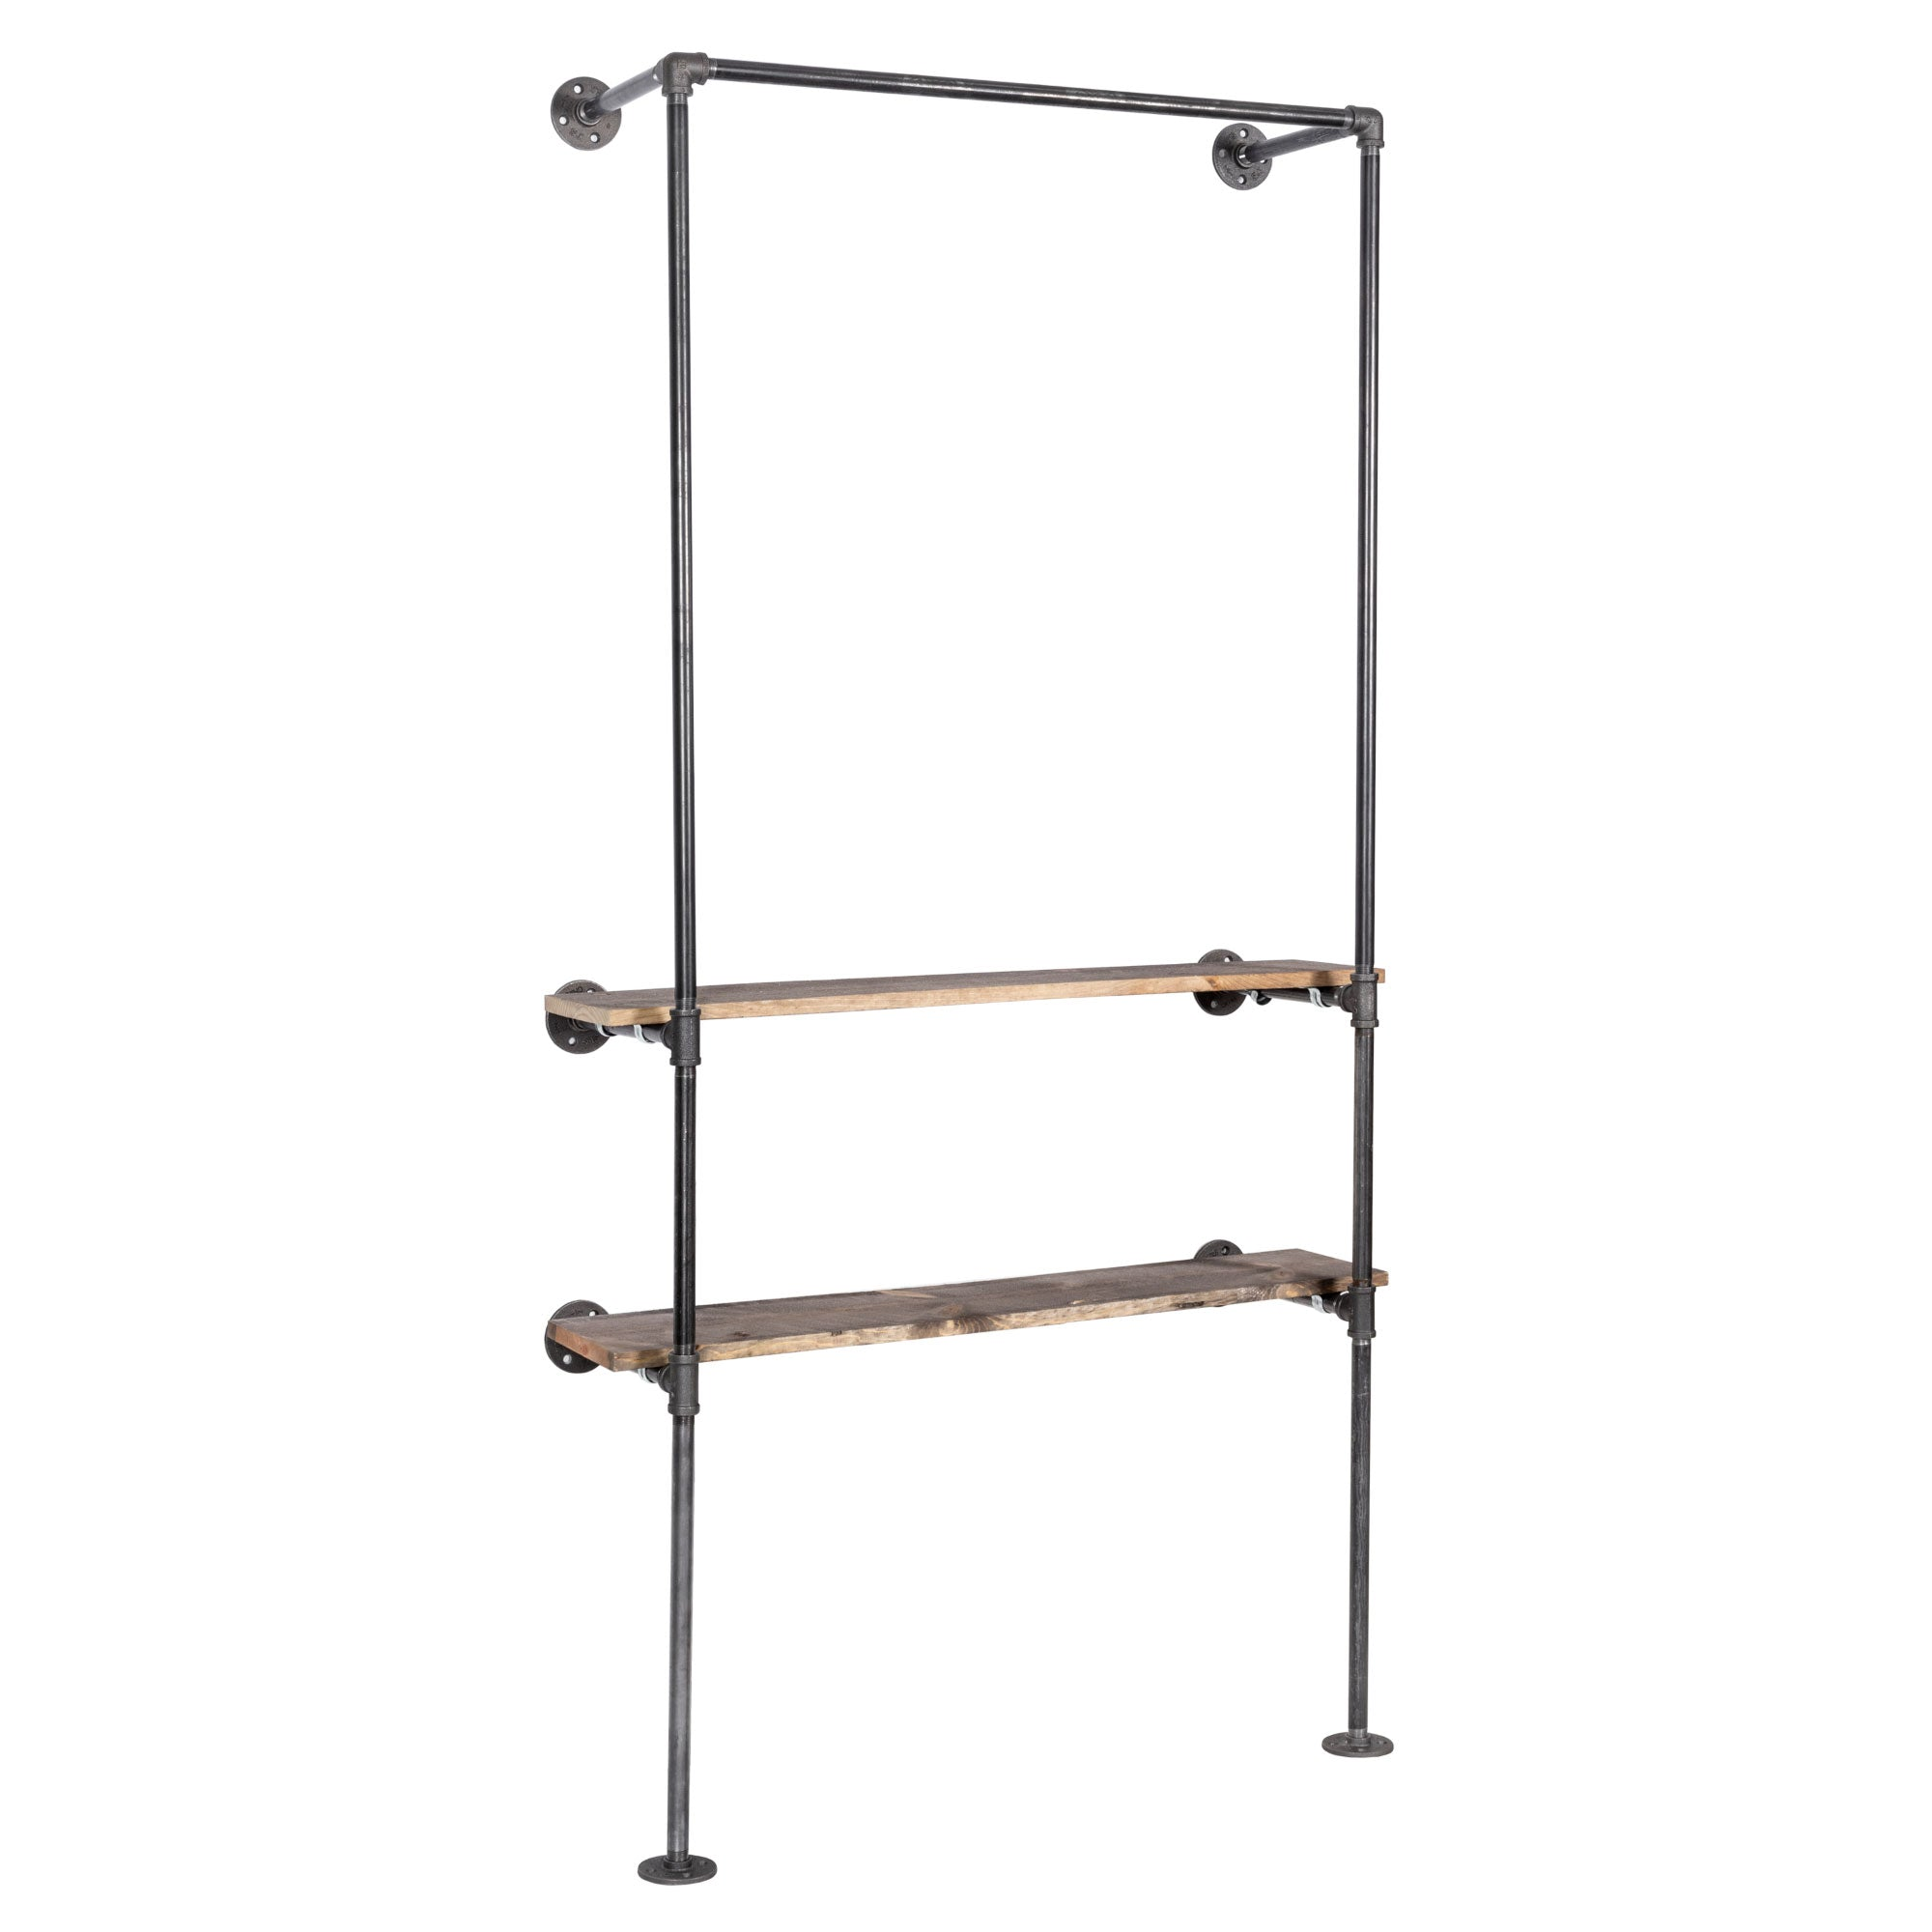 2 Shelf-wall Mounted Clothing Rack By PIPE DECOR